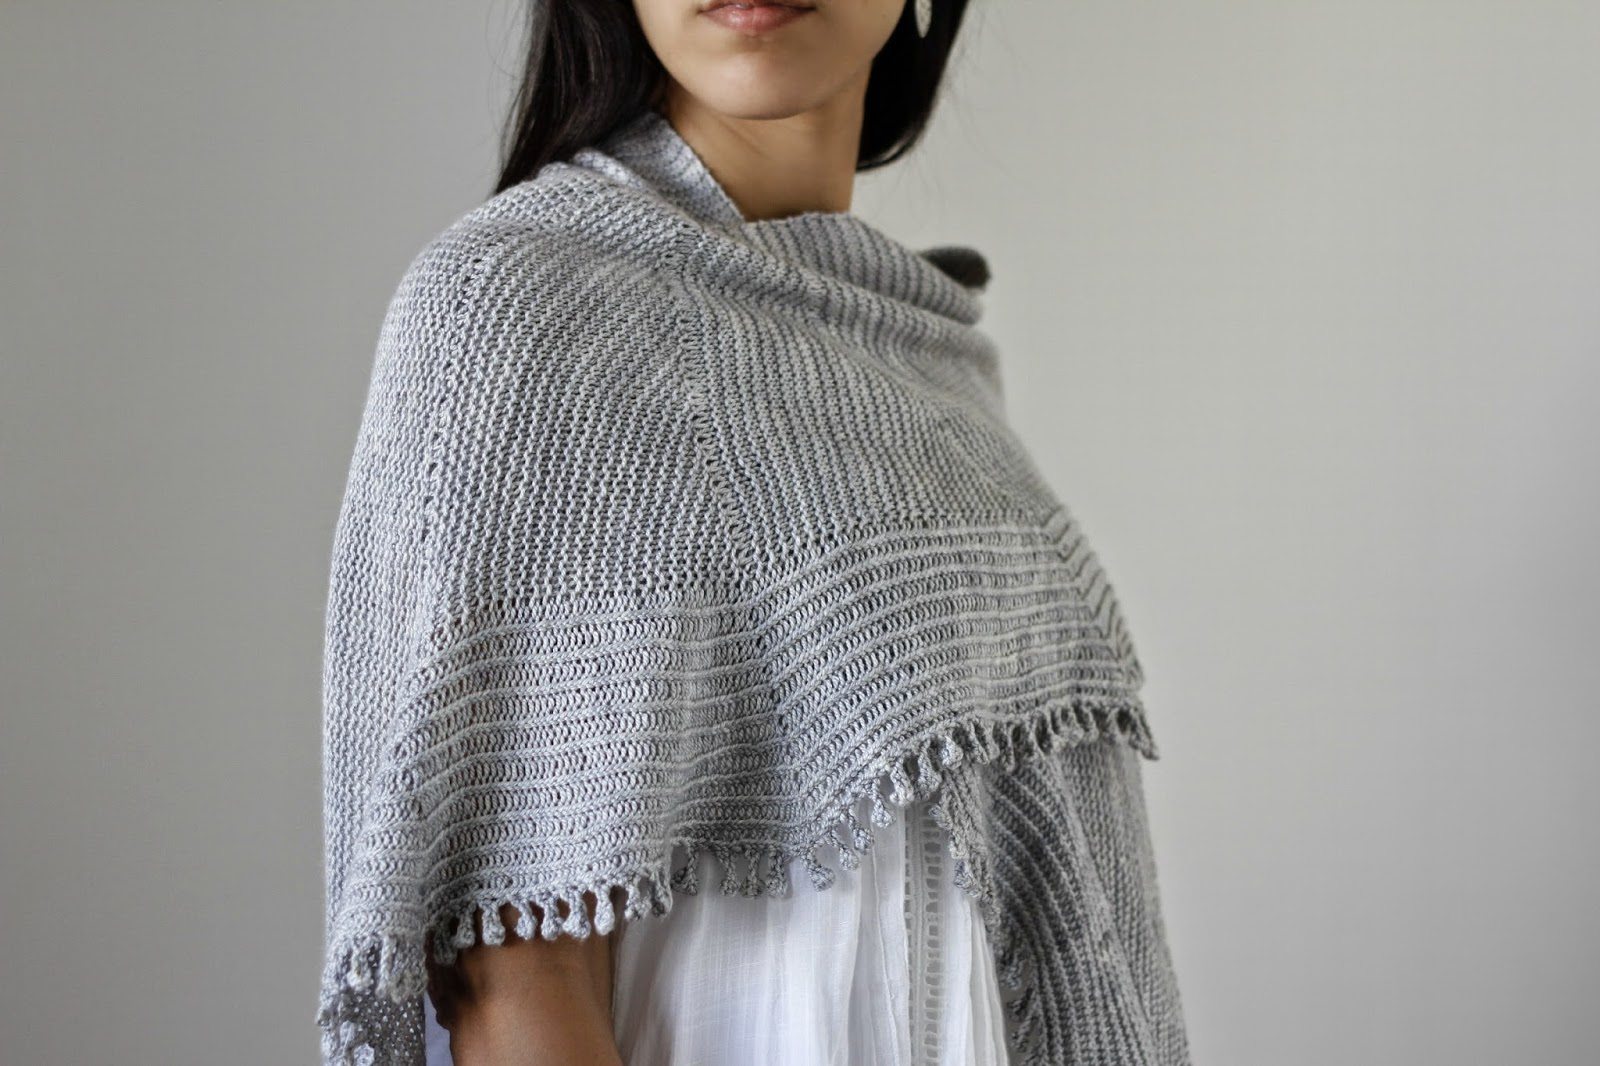 http://www.ravelry.com/patterns/library/inner-peace